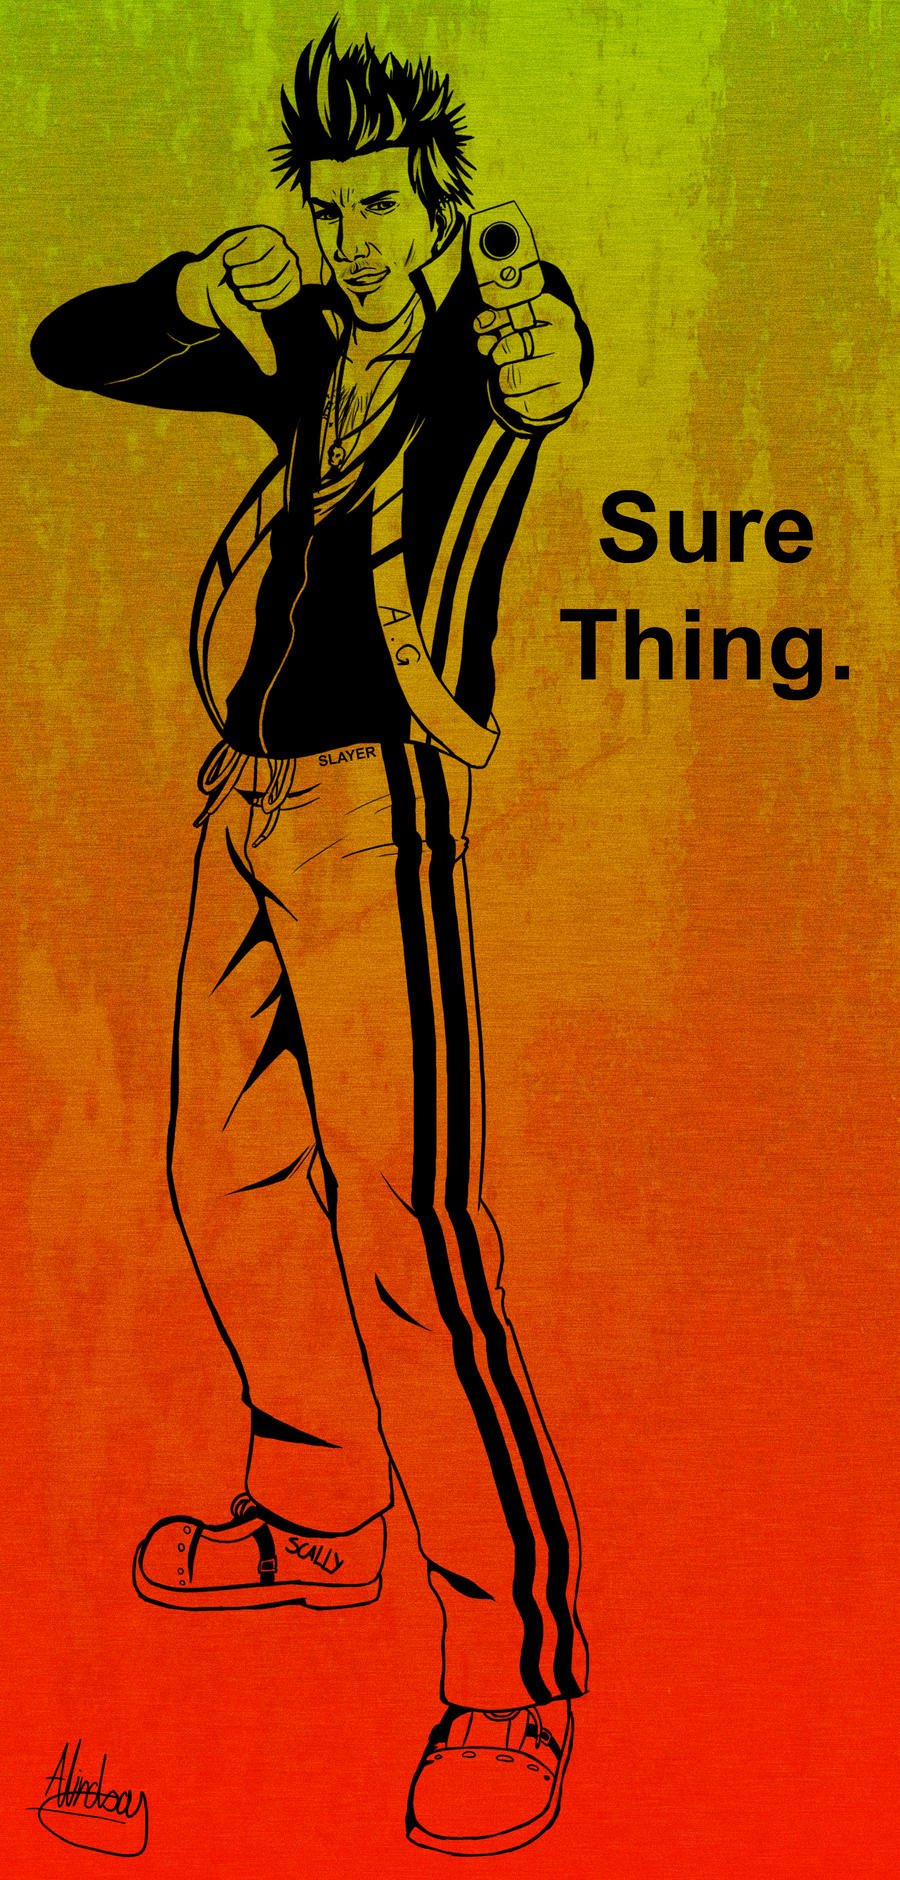 Sure Thing. by biscuit-the-great